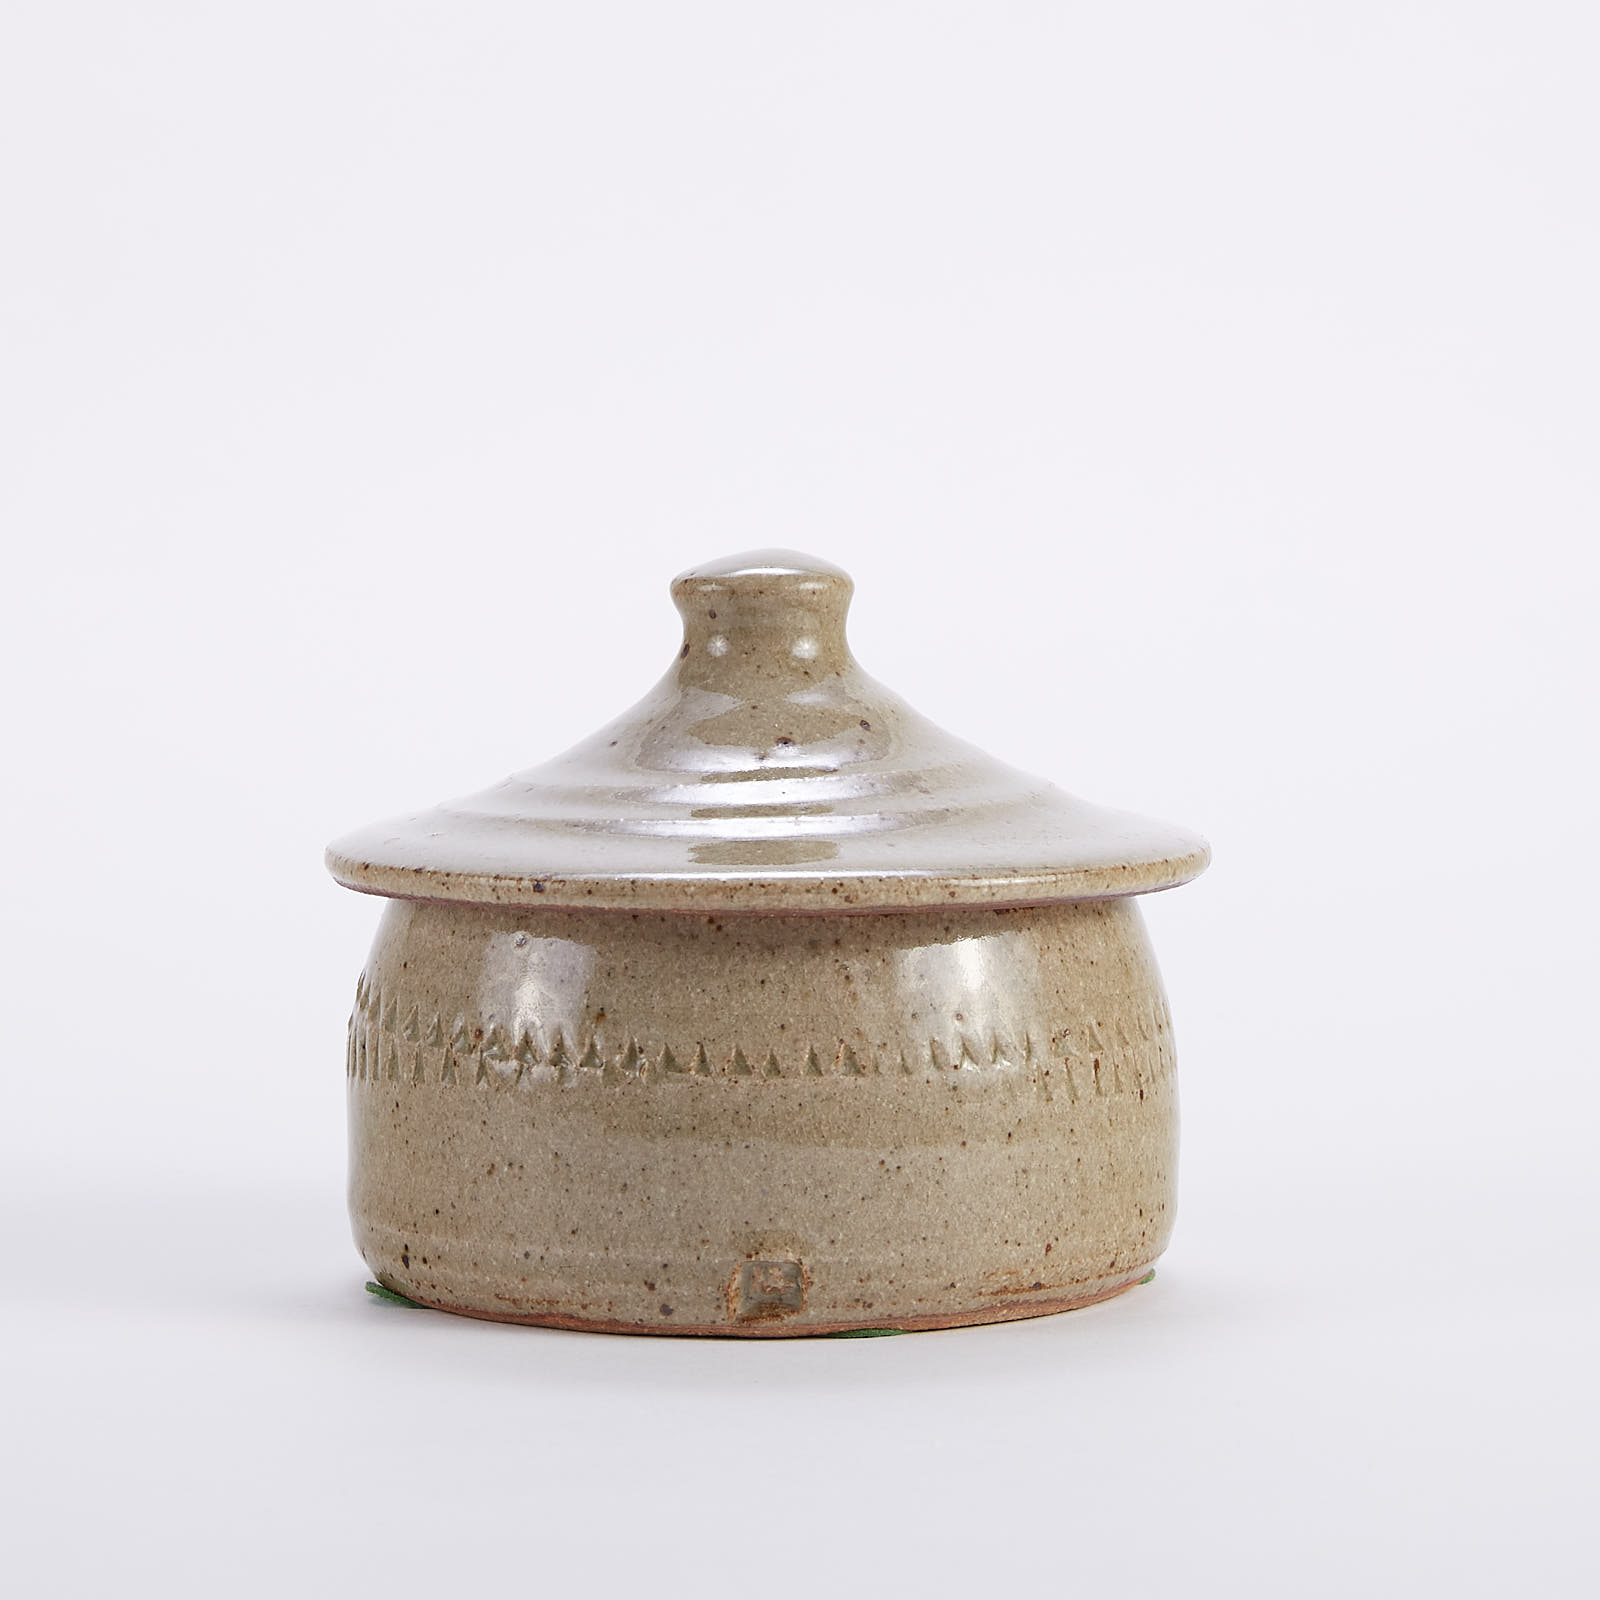 Lot 015: Warren MacKenzie Studio Pottery Lidded Box with Impressed Design